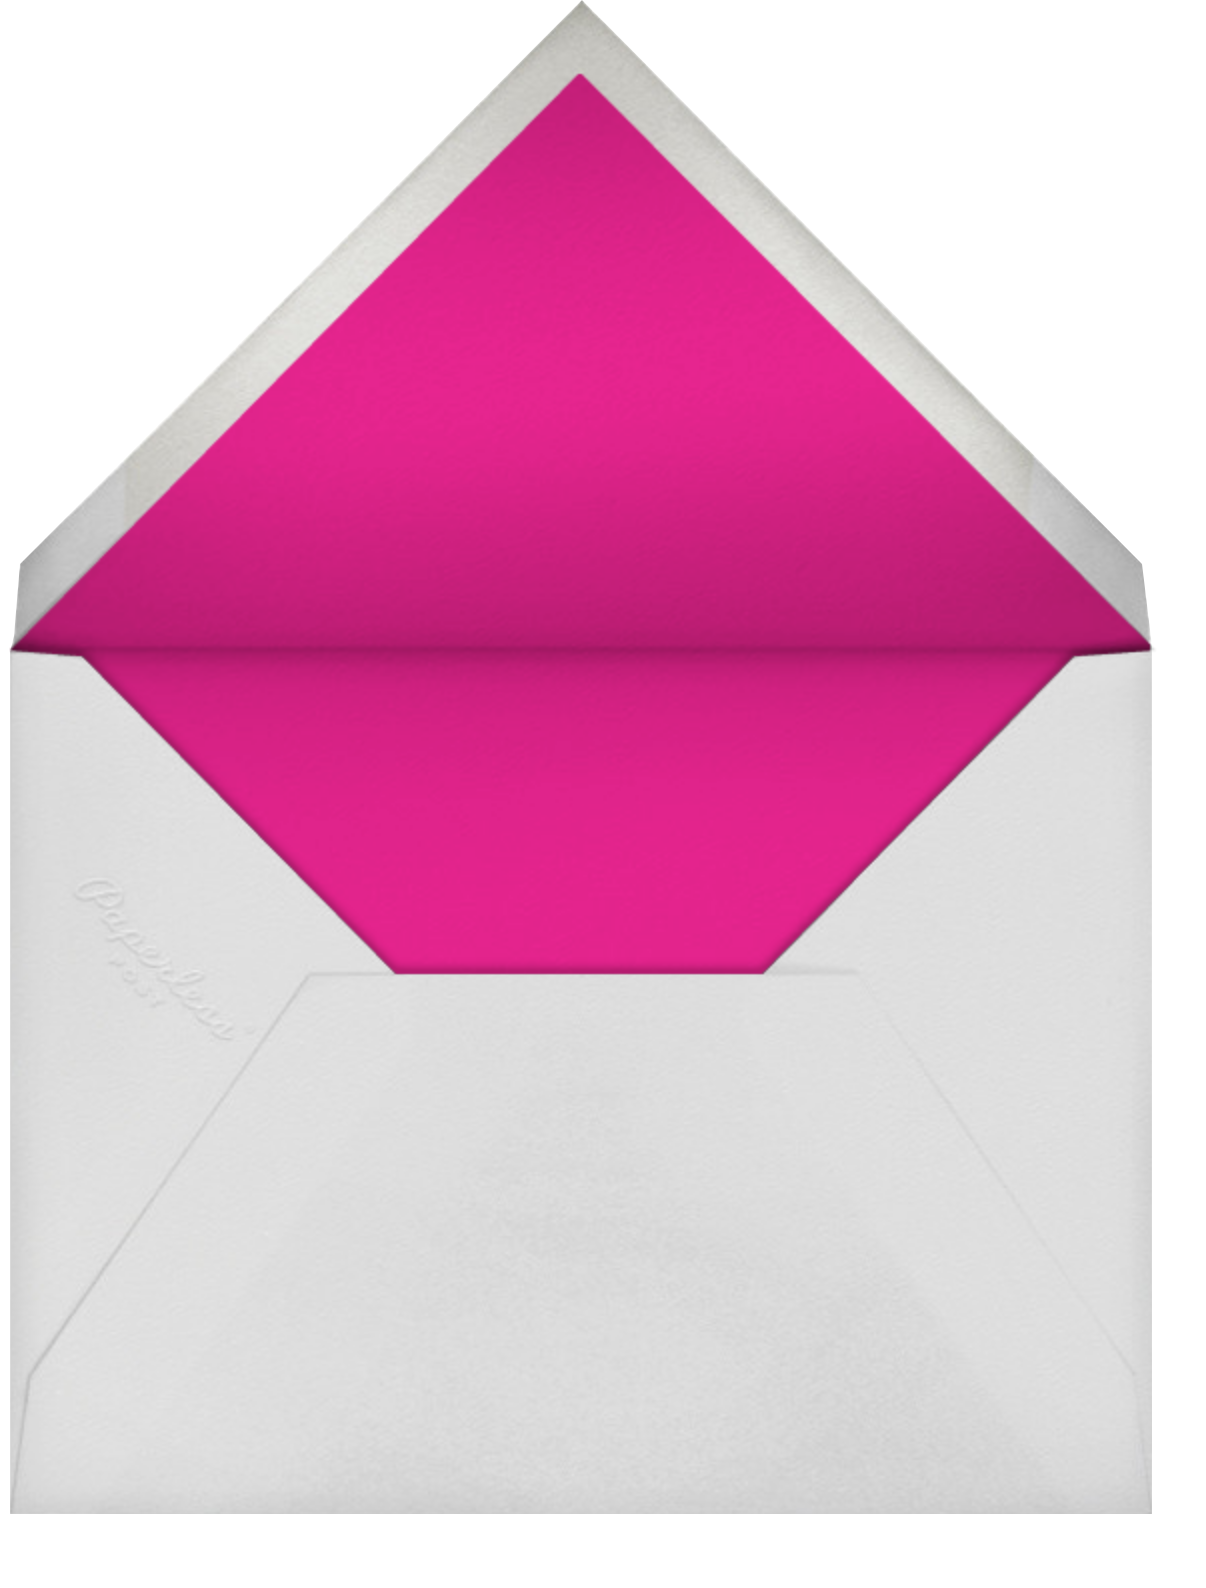 Beacon Hill - Raspberry - Paperless Post - Personalized stationery - envelope back